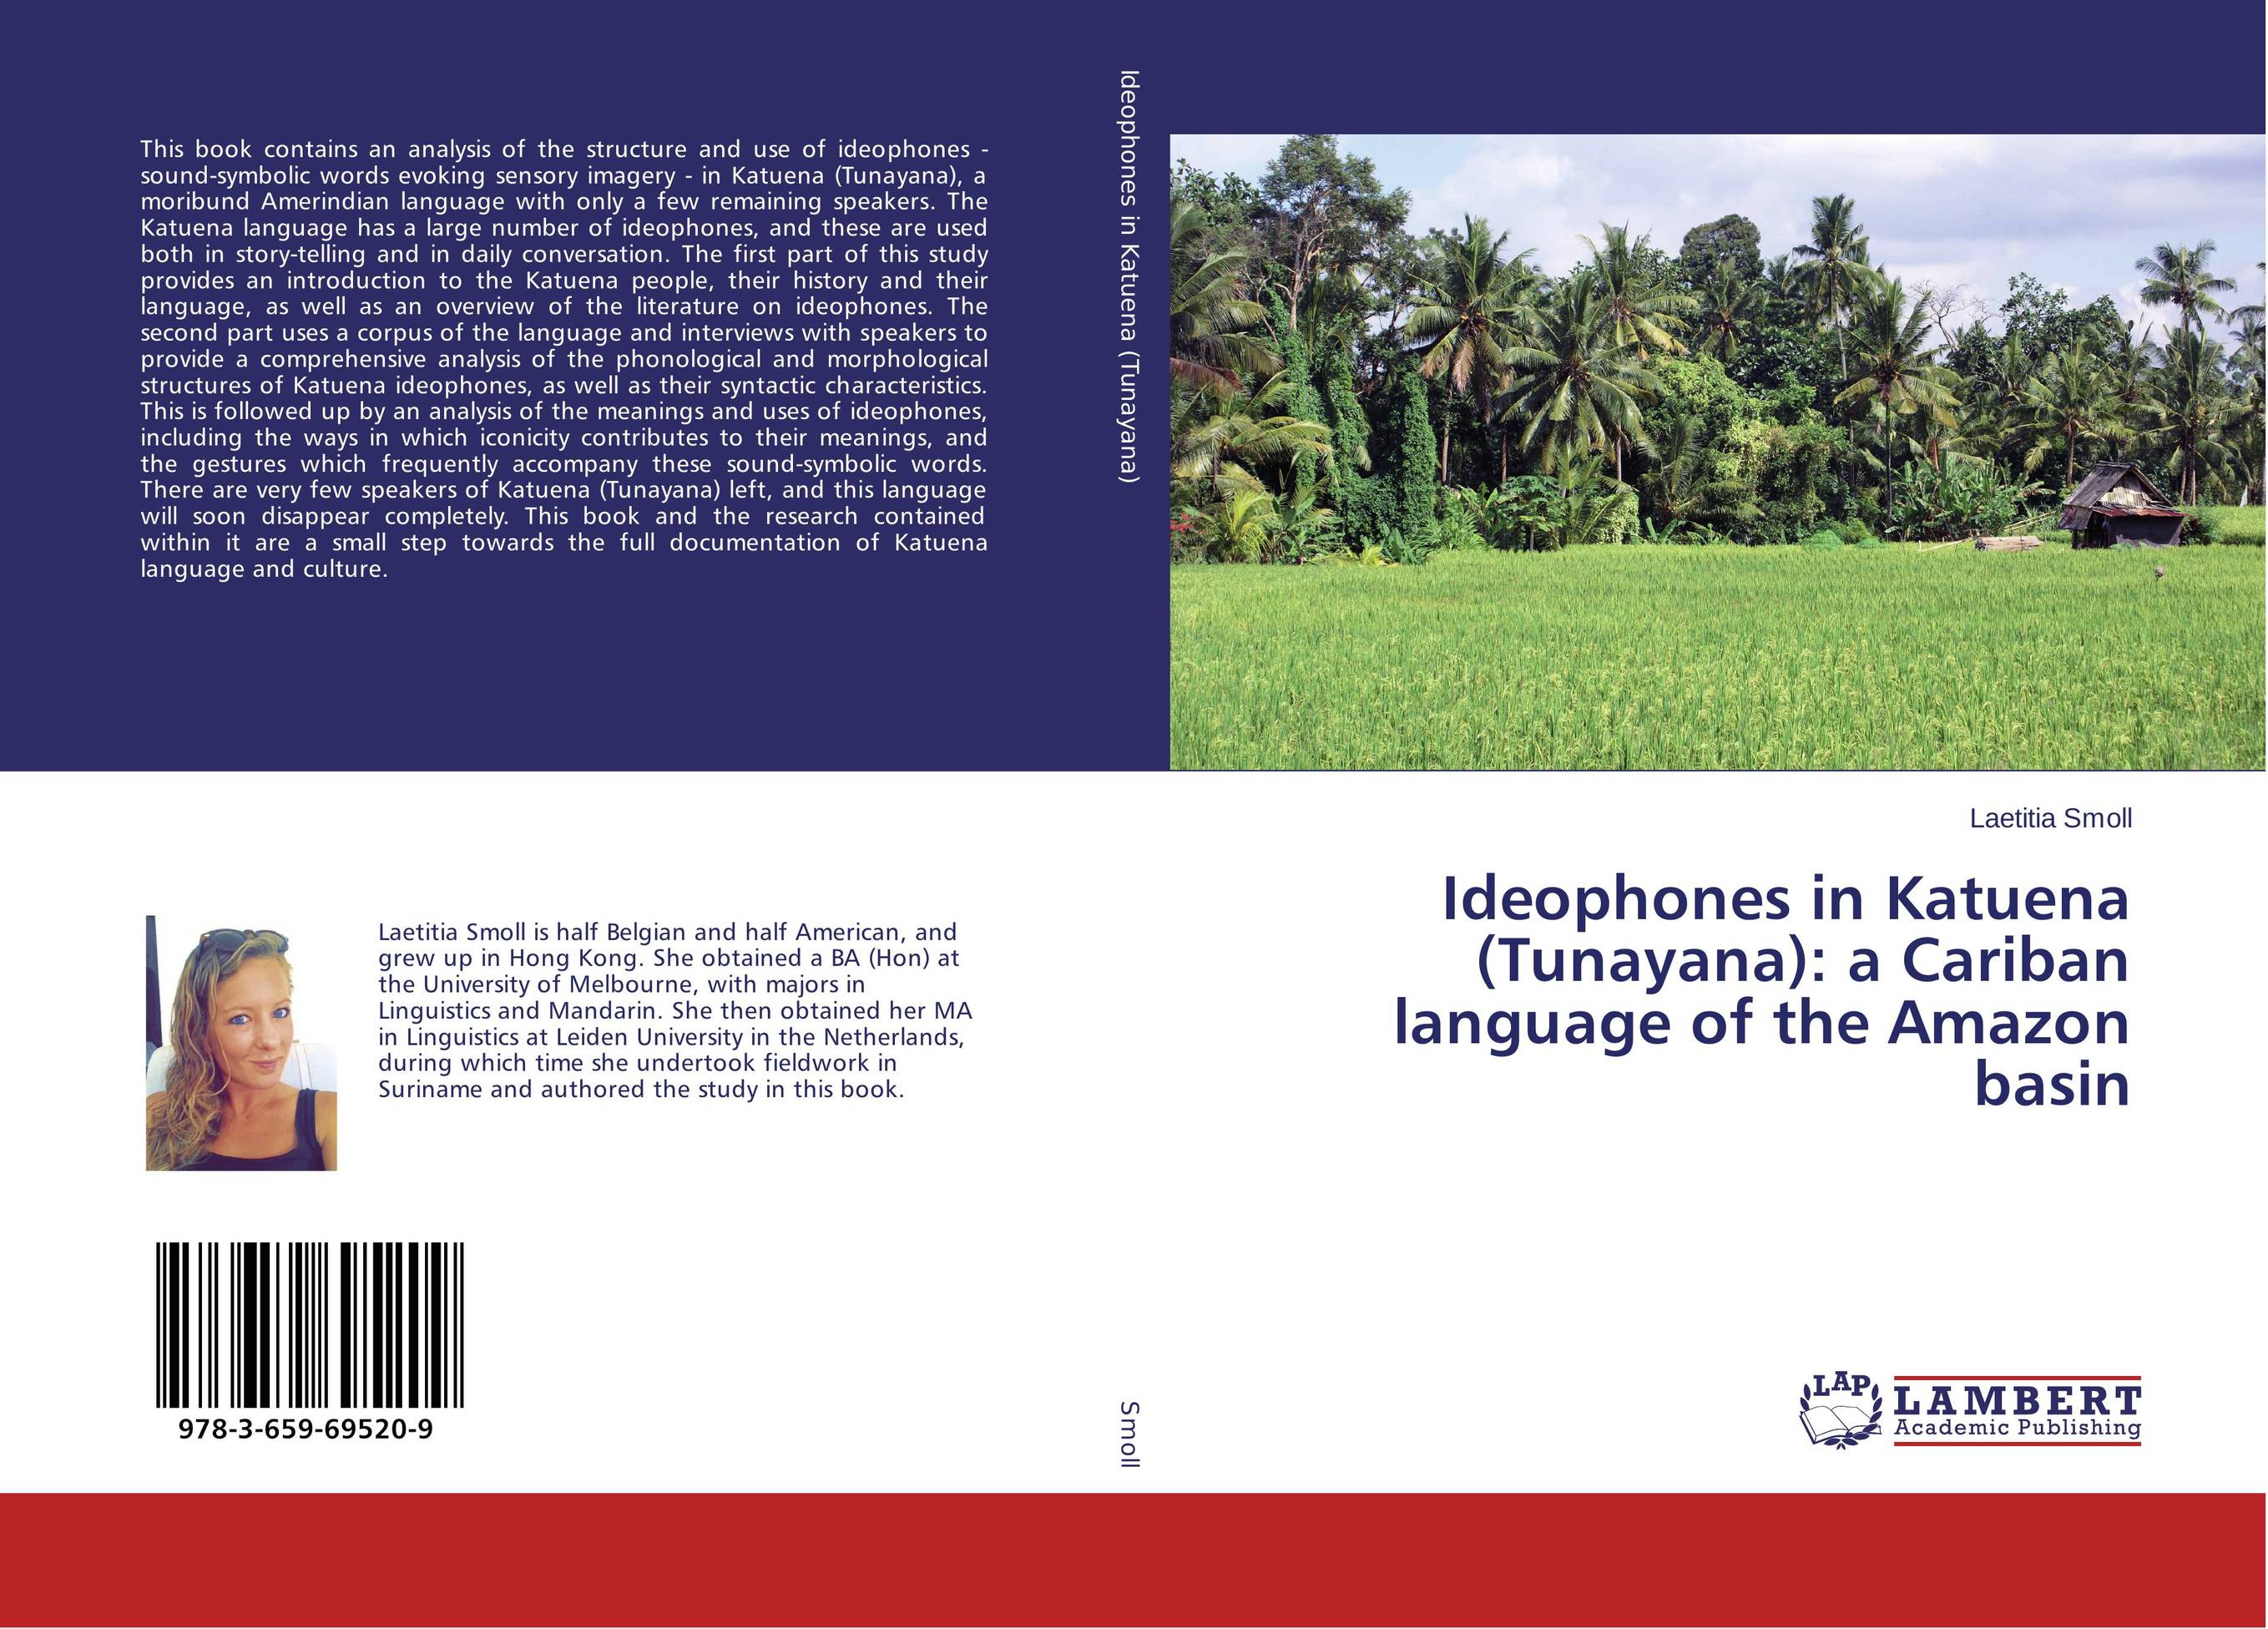 Ideophones in Katuena (Tunayana): a Cariban language of the Amazon basin sanfor